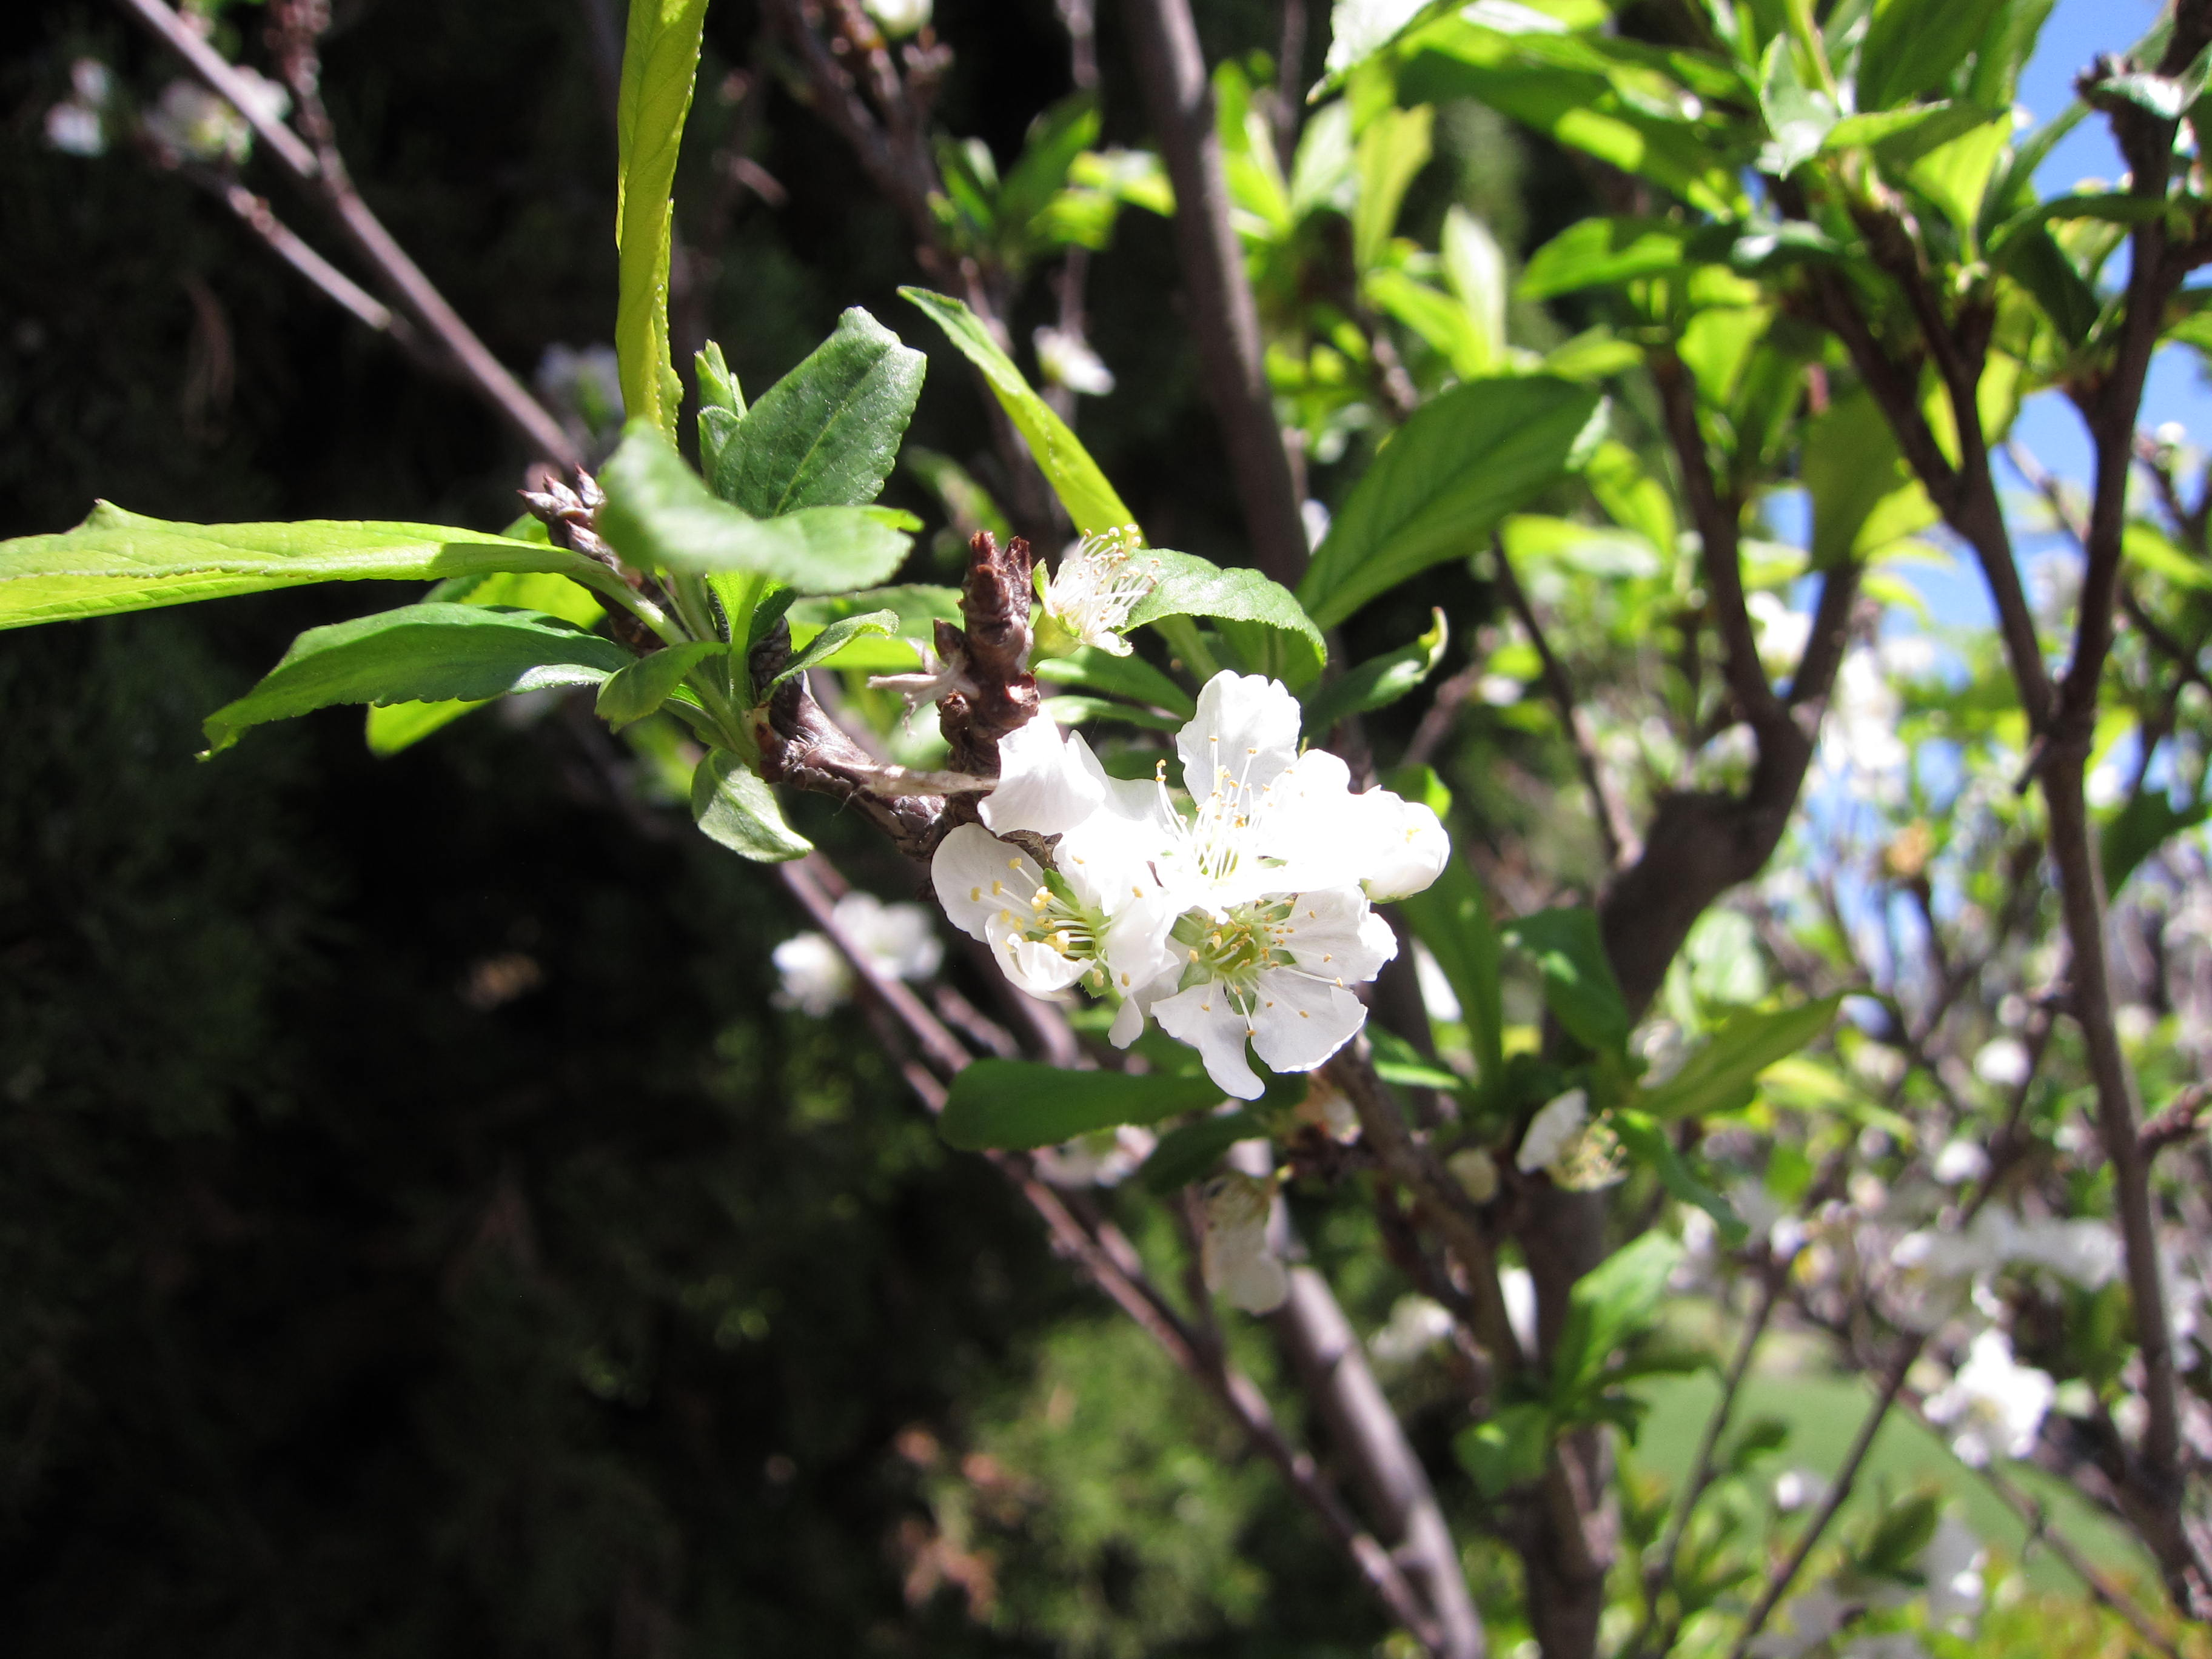 Santa Rosa plum is starting to flower and leaf out. Come July we'll have deep red fruits.